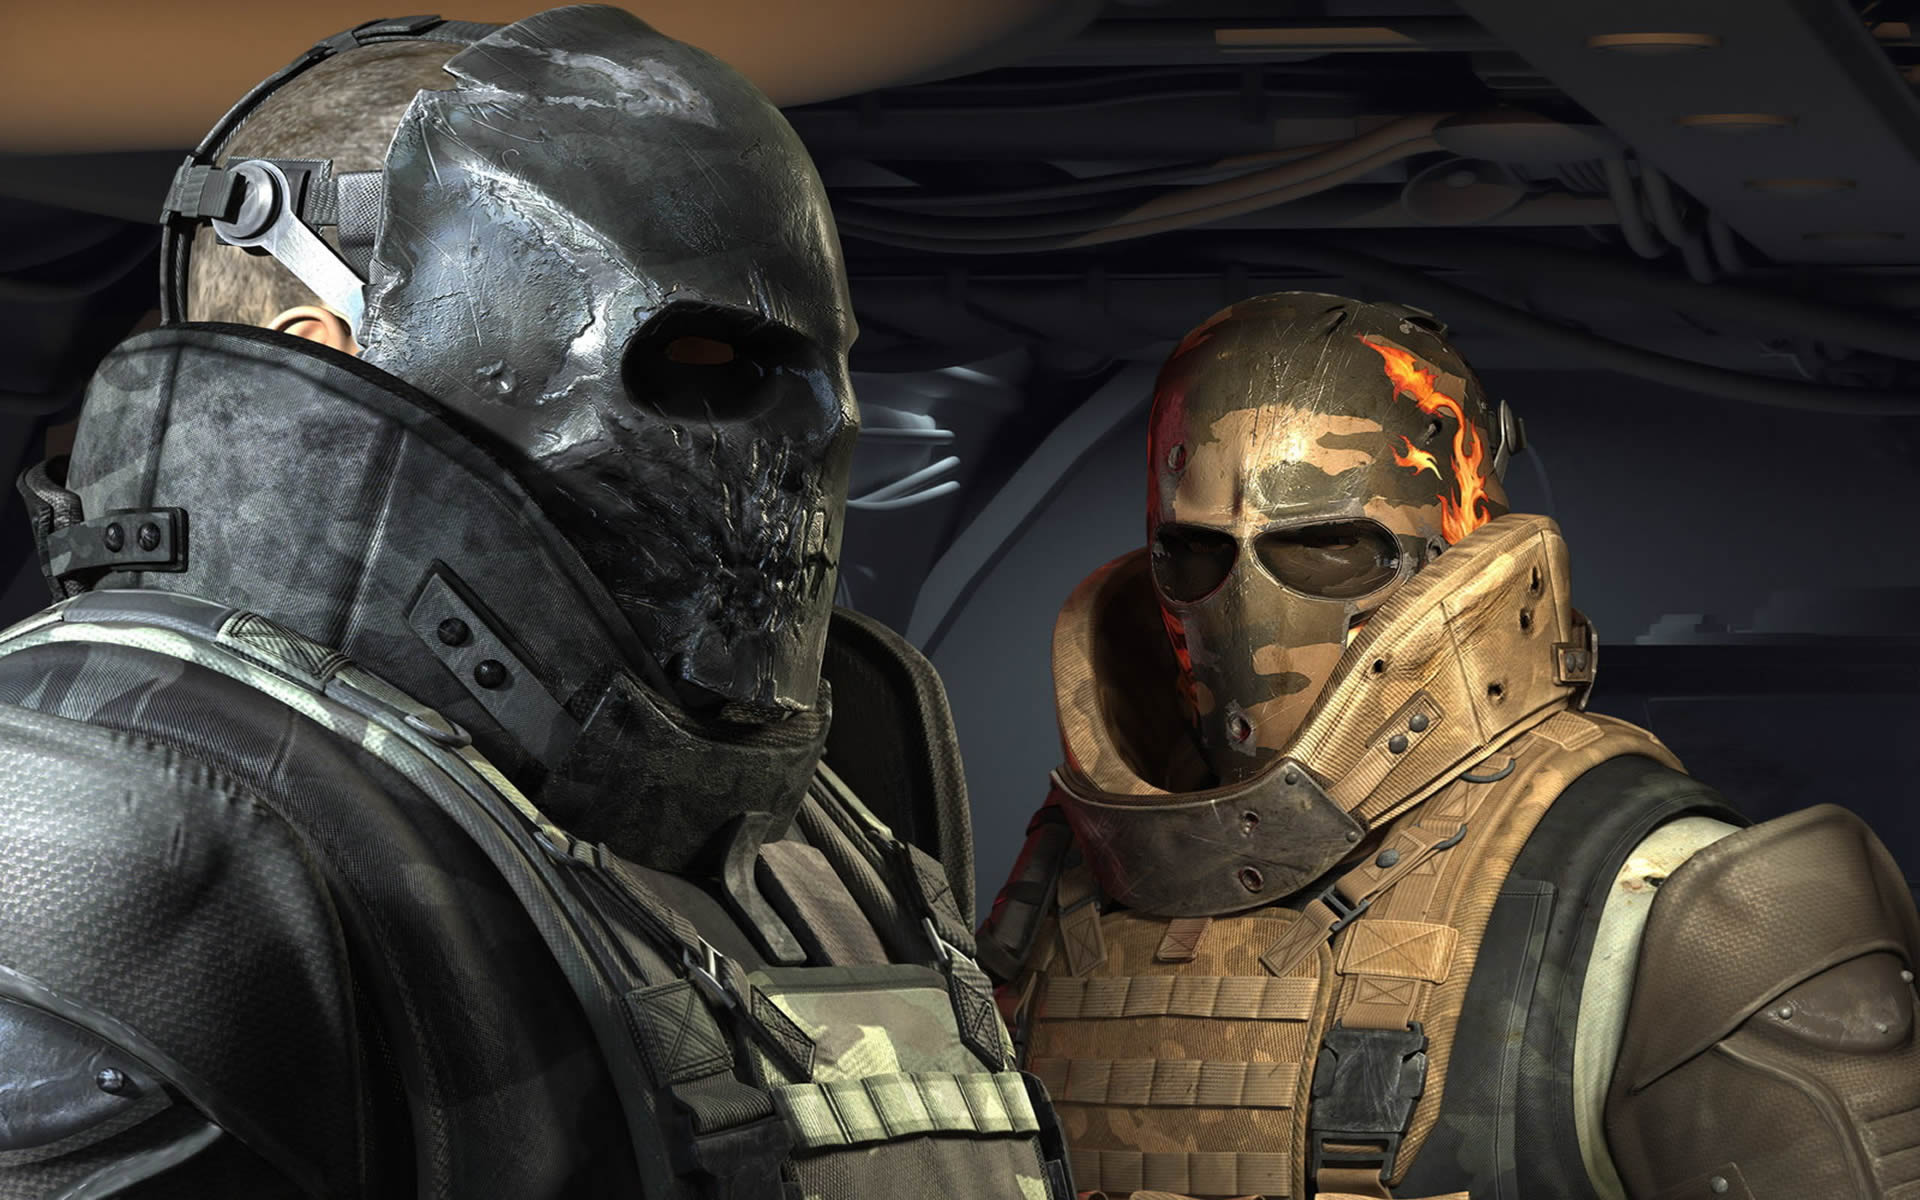 Go Army Wallpaper: Army Of Two Wallpaper